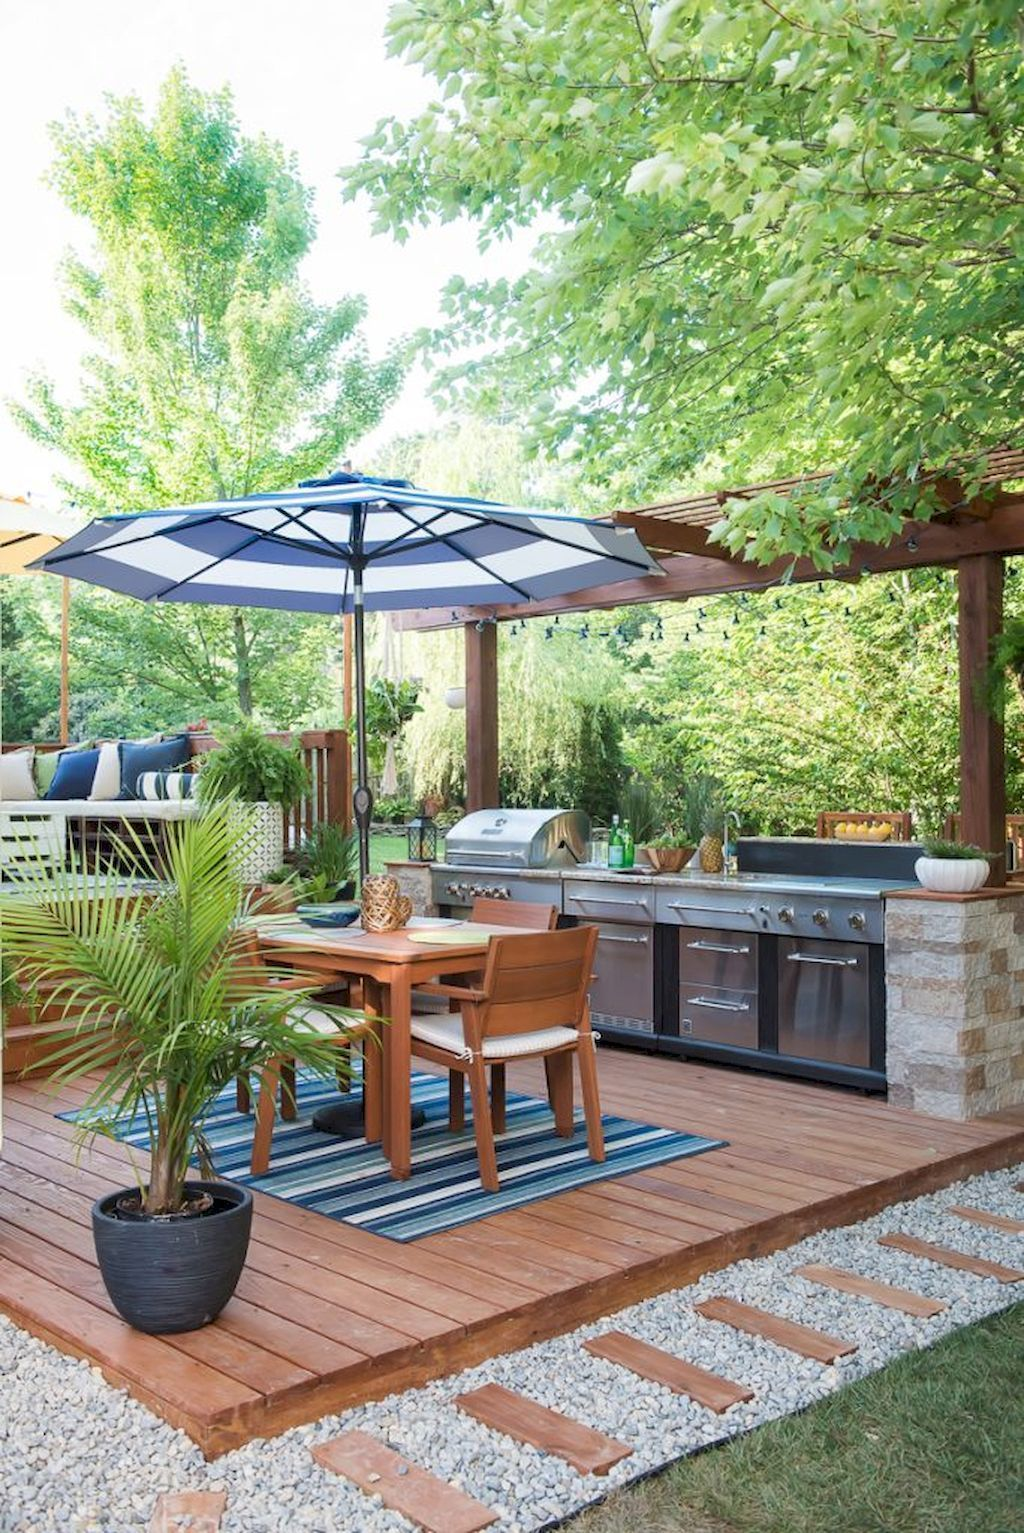 Creative Patio/Outdoor Bar Ideas You Must Try at Your Backyard ... on creative pool deck ideas, creative diy kitchen ideas, creative kitchen backsplash ideas, creative small kitchen design ideas,